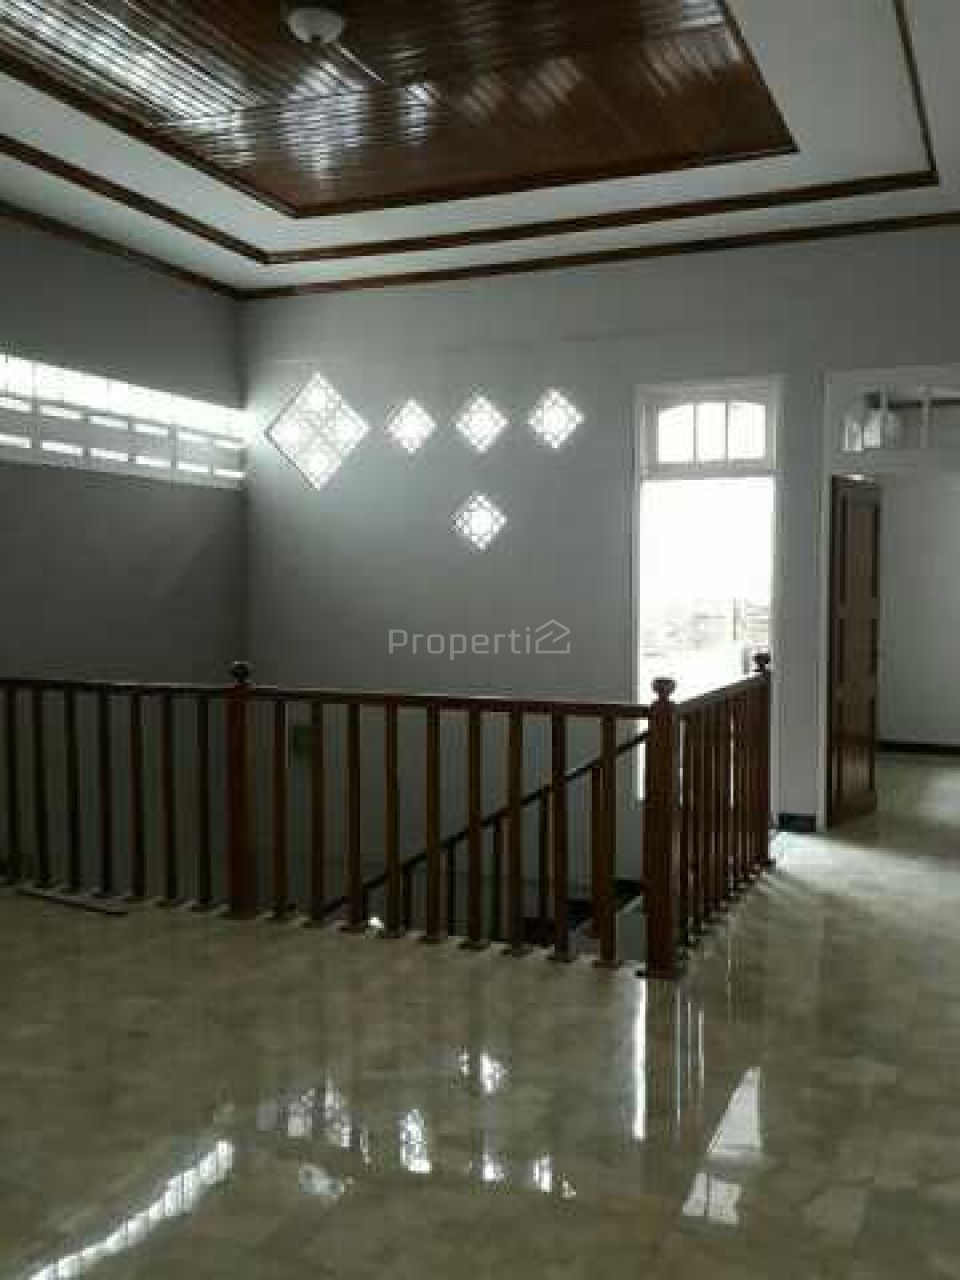 2-Storey House Ready for Occupy in Kayu Putih, Pulo Gadung